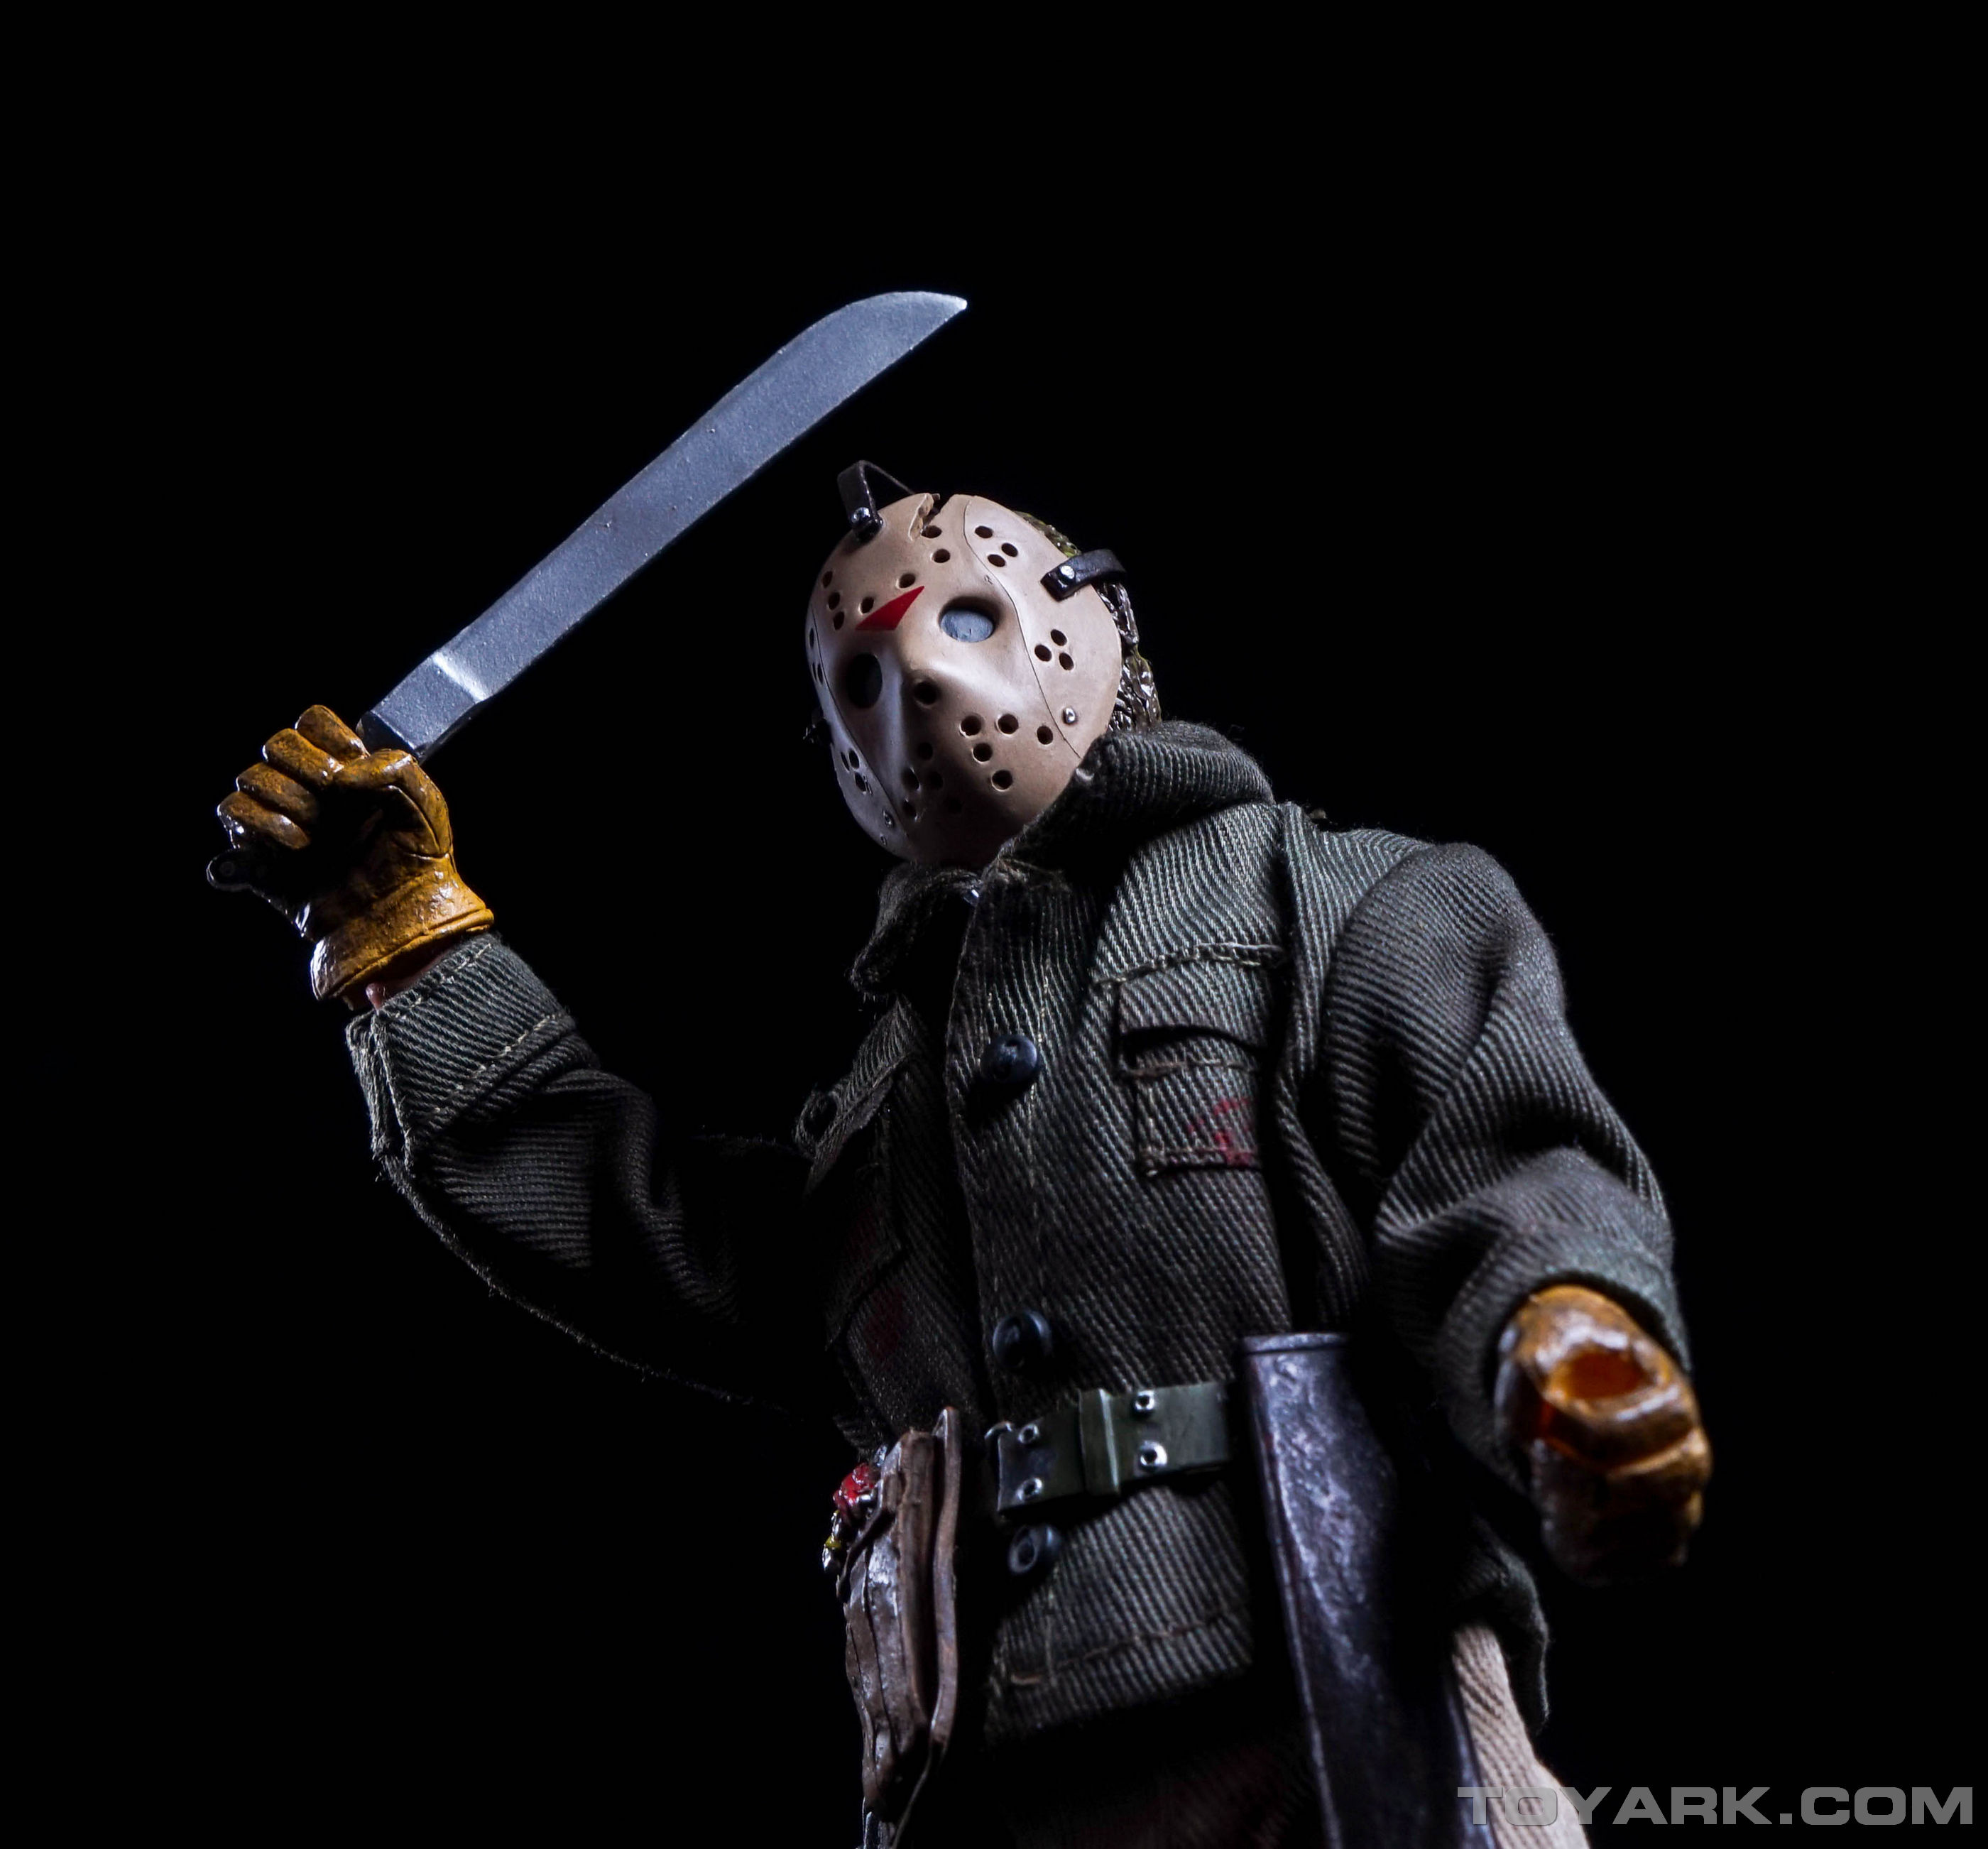 http://news.toyark.com/wp-content/uploads/sites/4/2015/08/Friday-The-13th-Part-6-Retro-Jason-039.jpg